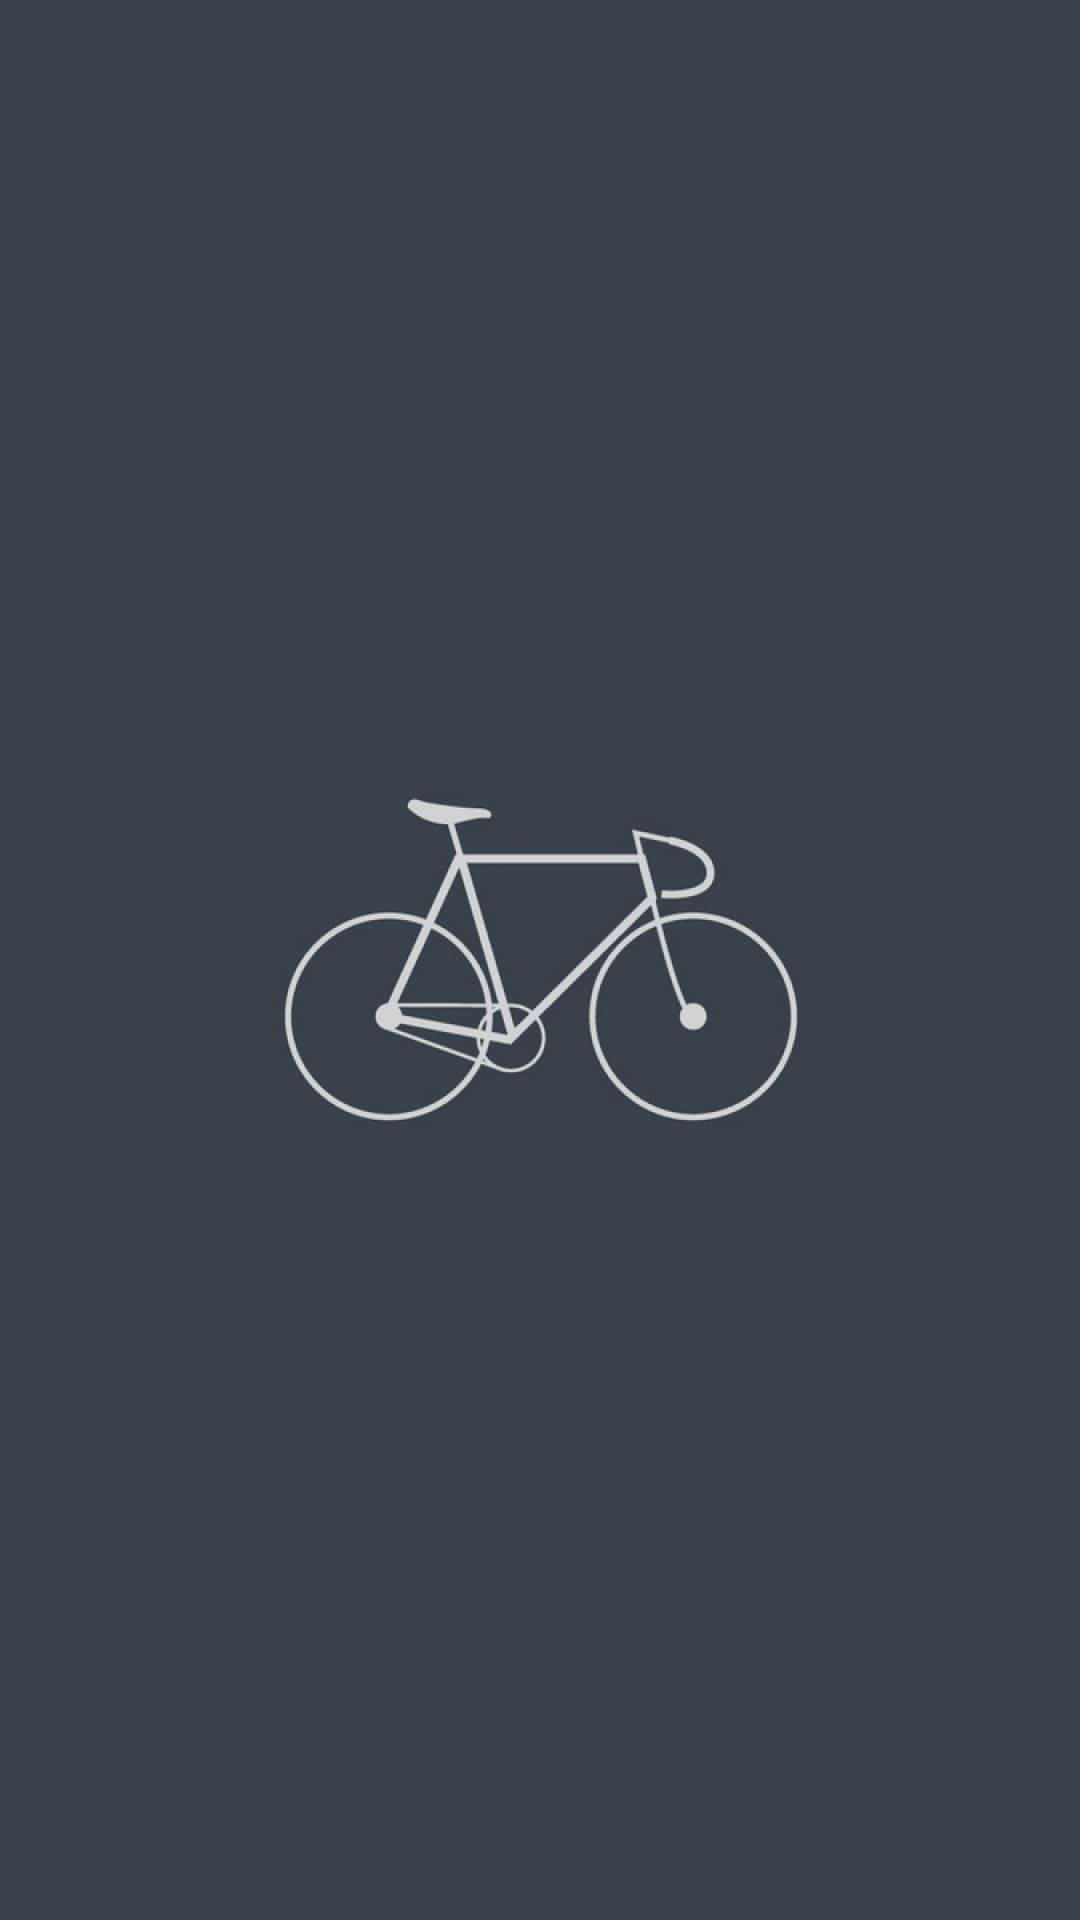 50+ Minimalist iPhone Wallpapers | Man of Many